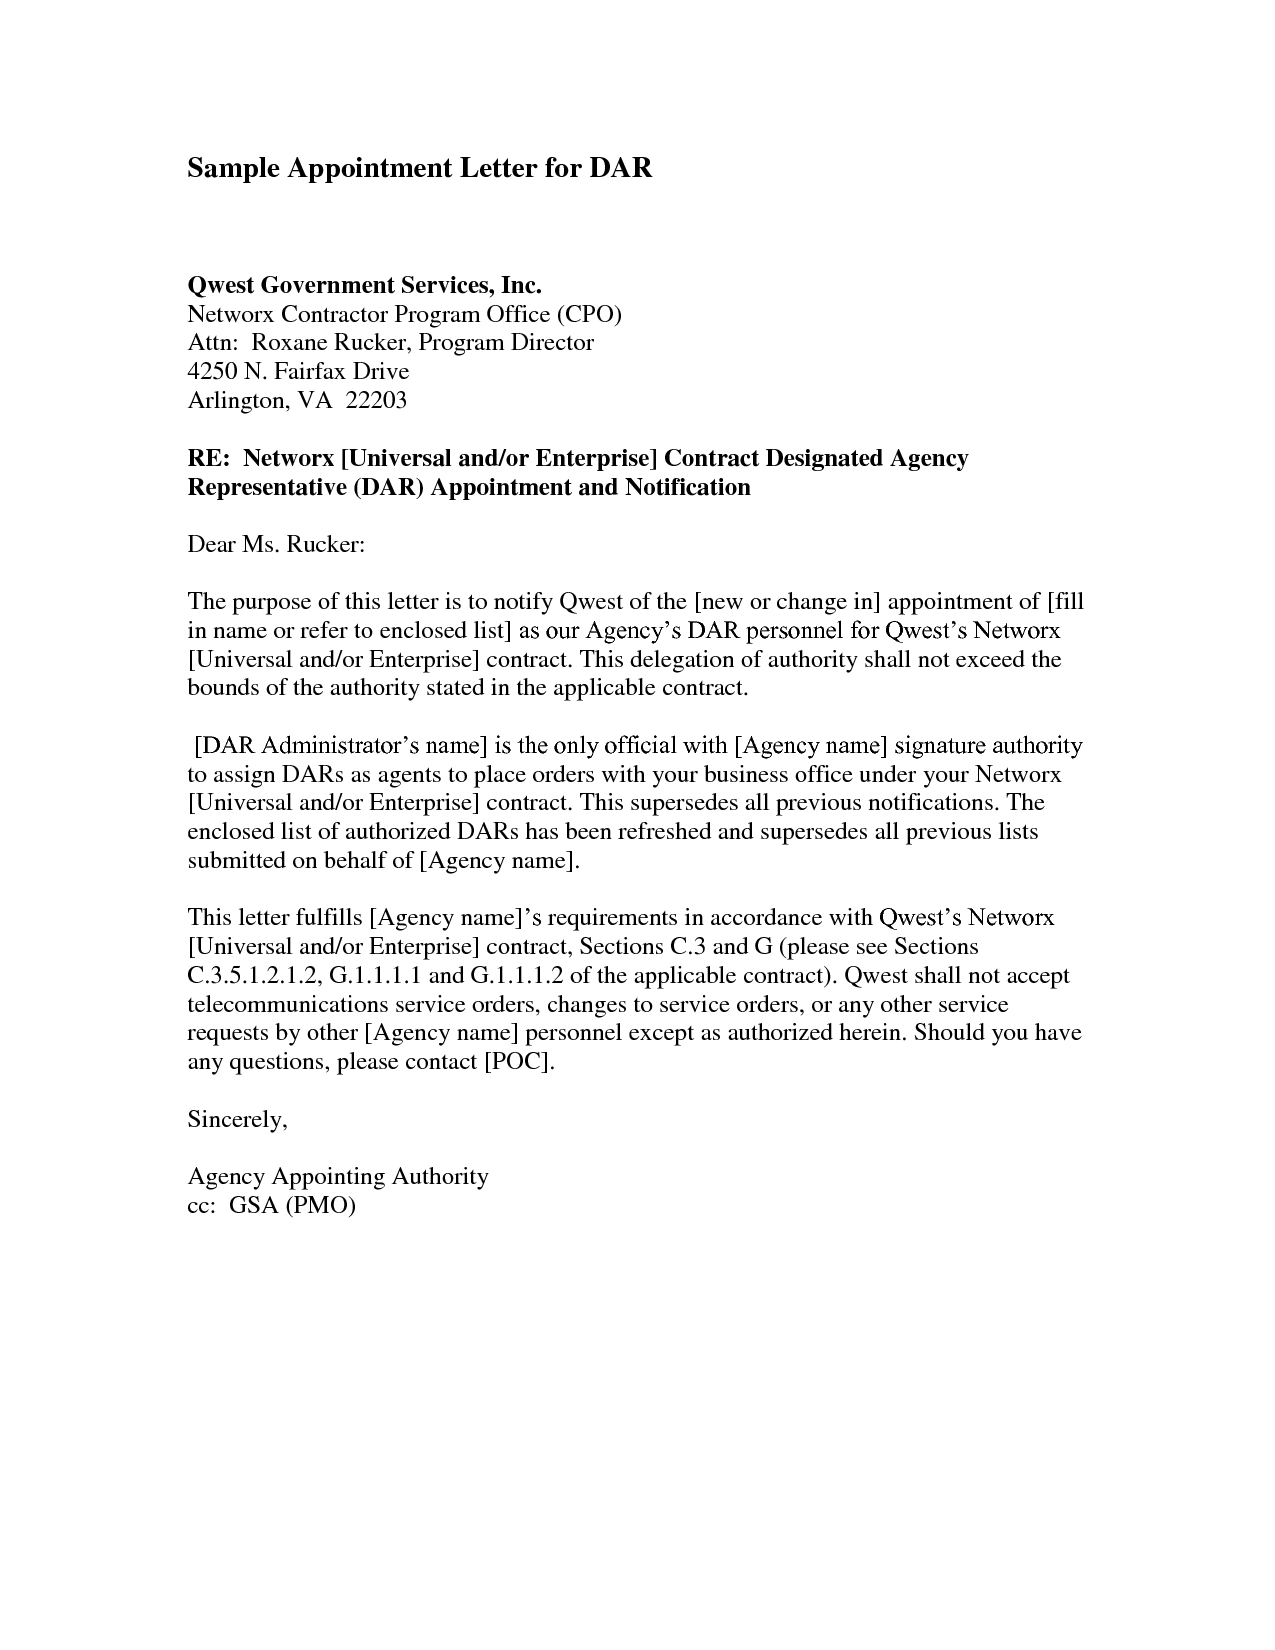 Contract Letter Template - Trustee Appointment Letter Director Trustee is Appointed or